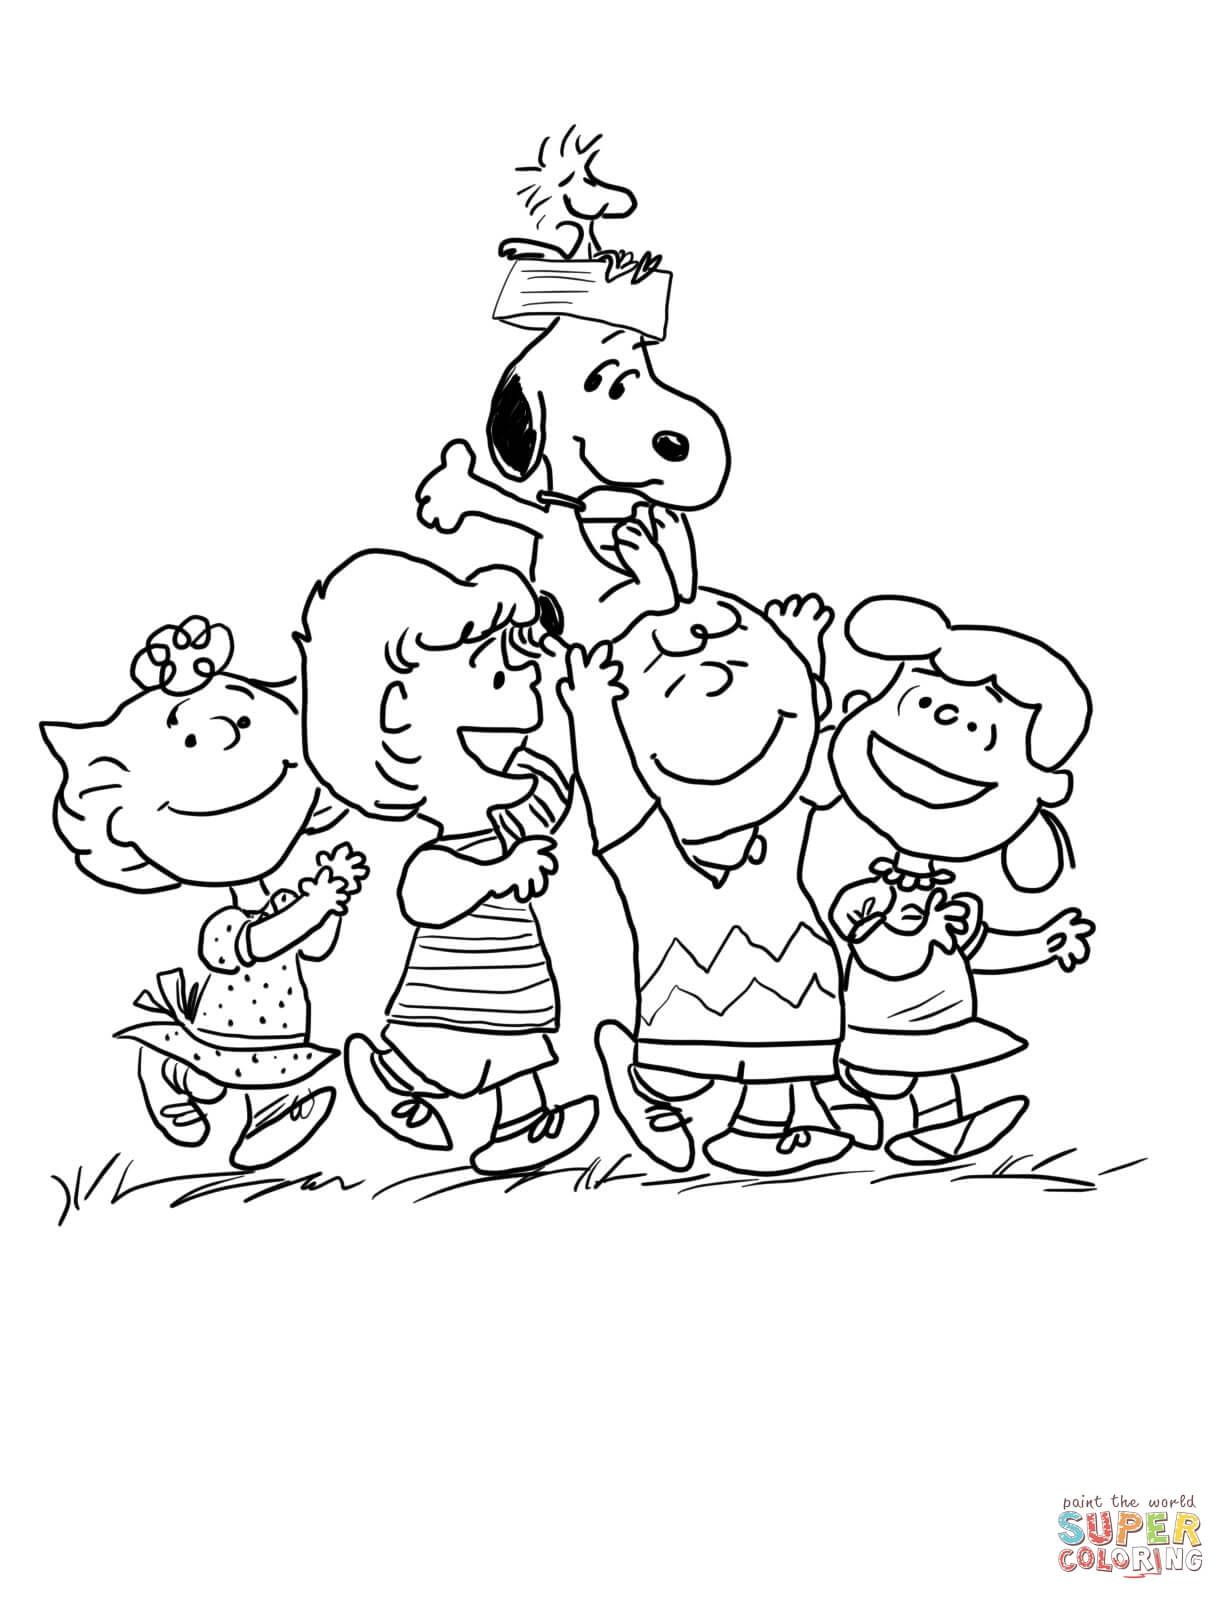 Peanuts characters coloring pages peanuts gang coloring page free